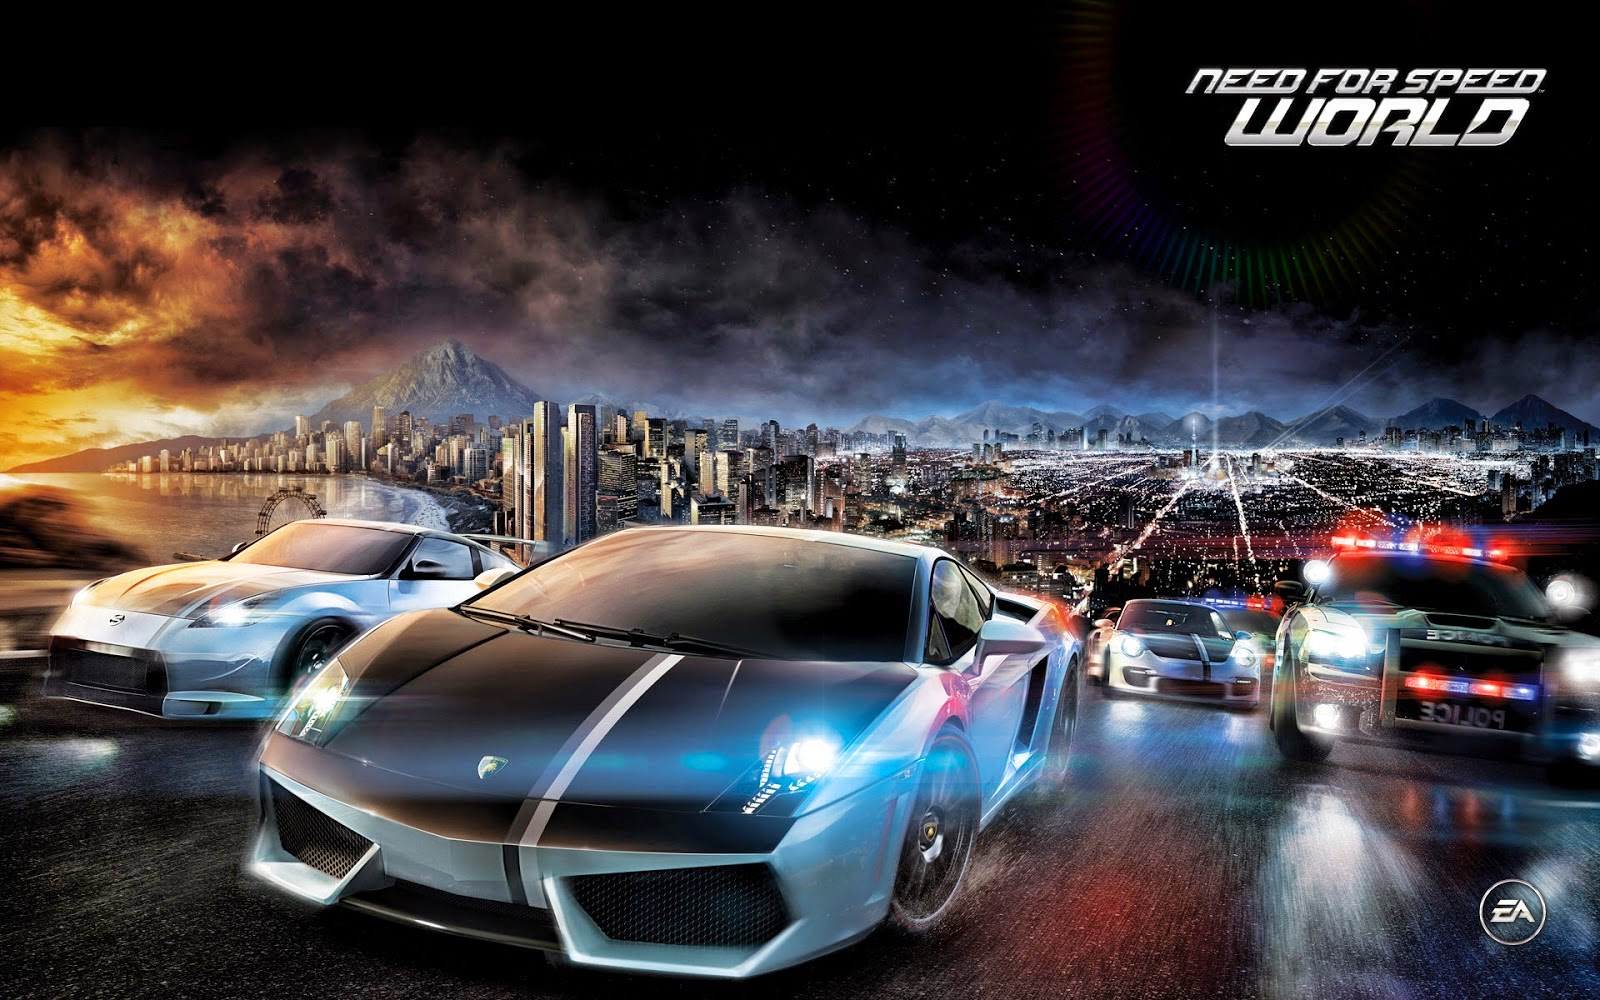 need for speed world wide 10 Game Paling Populer di Dunia